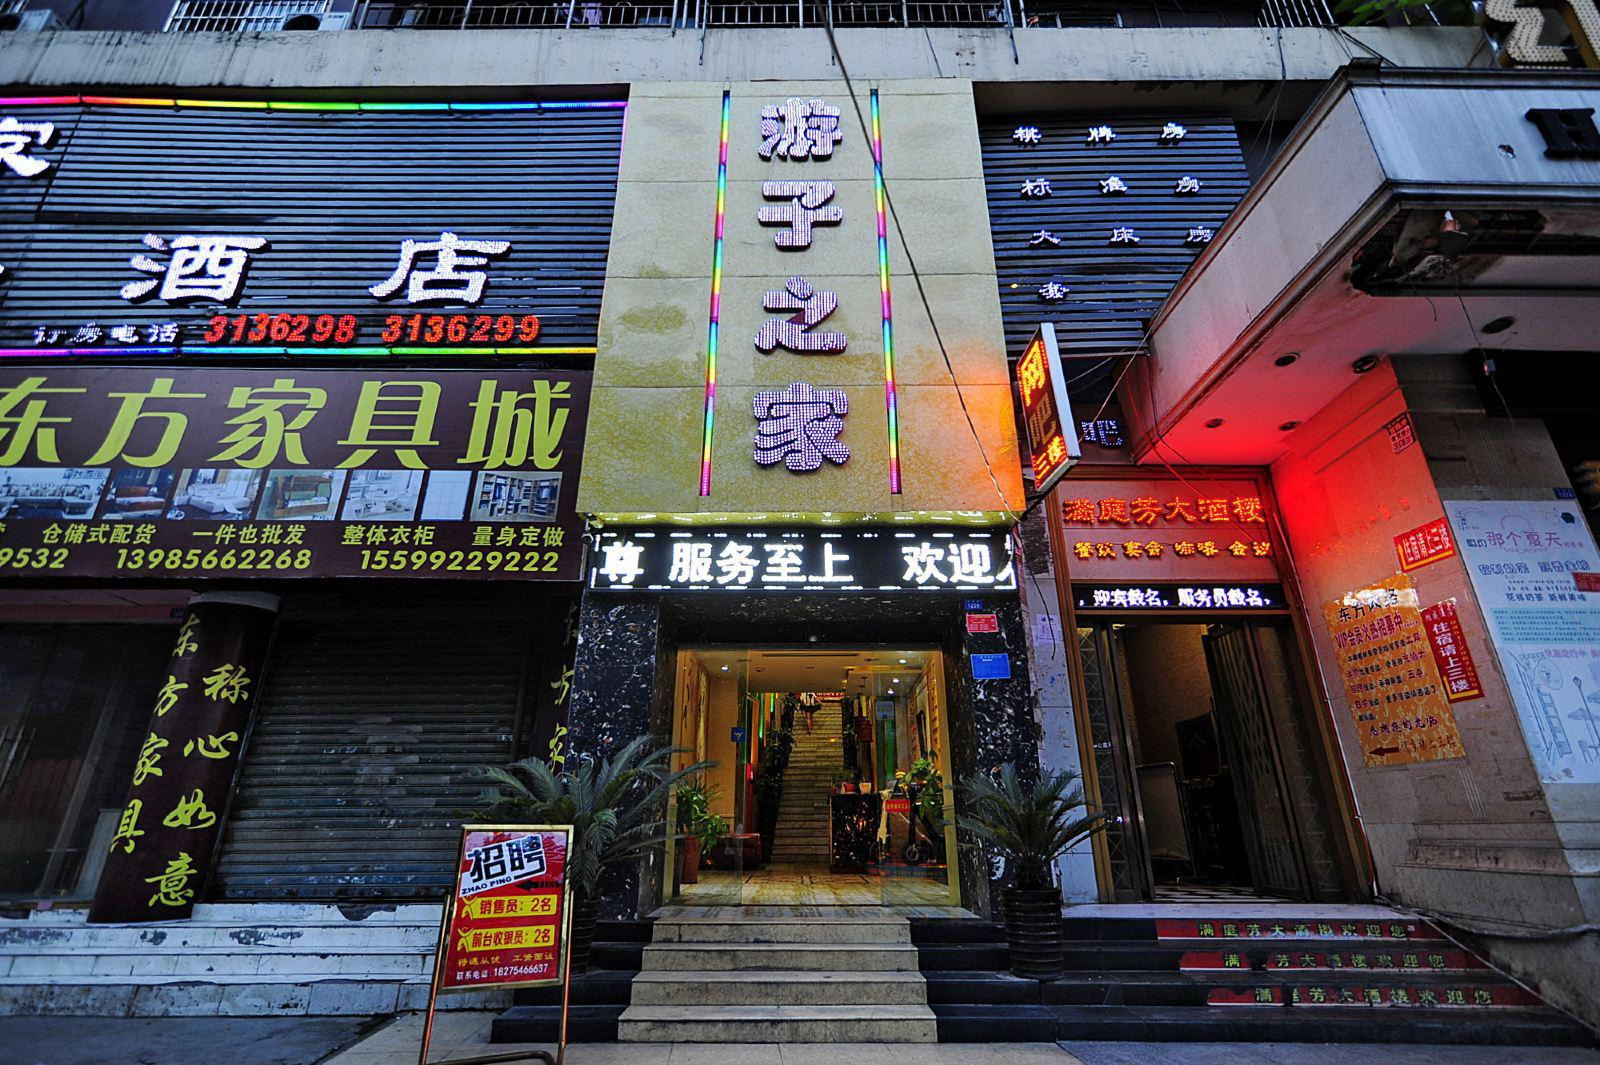 Youzizhijia Business Hotel